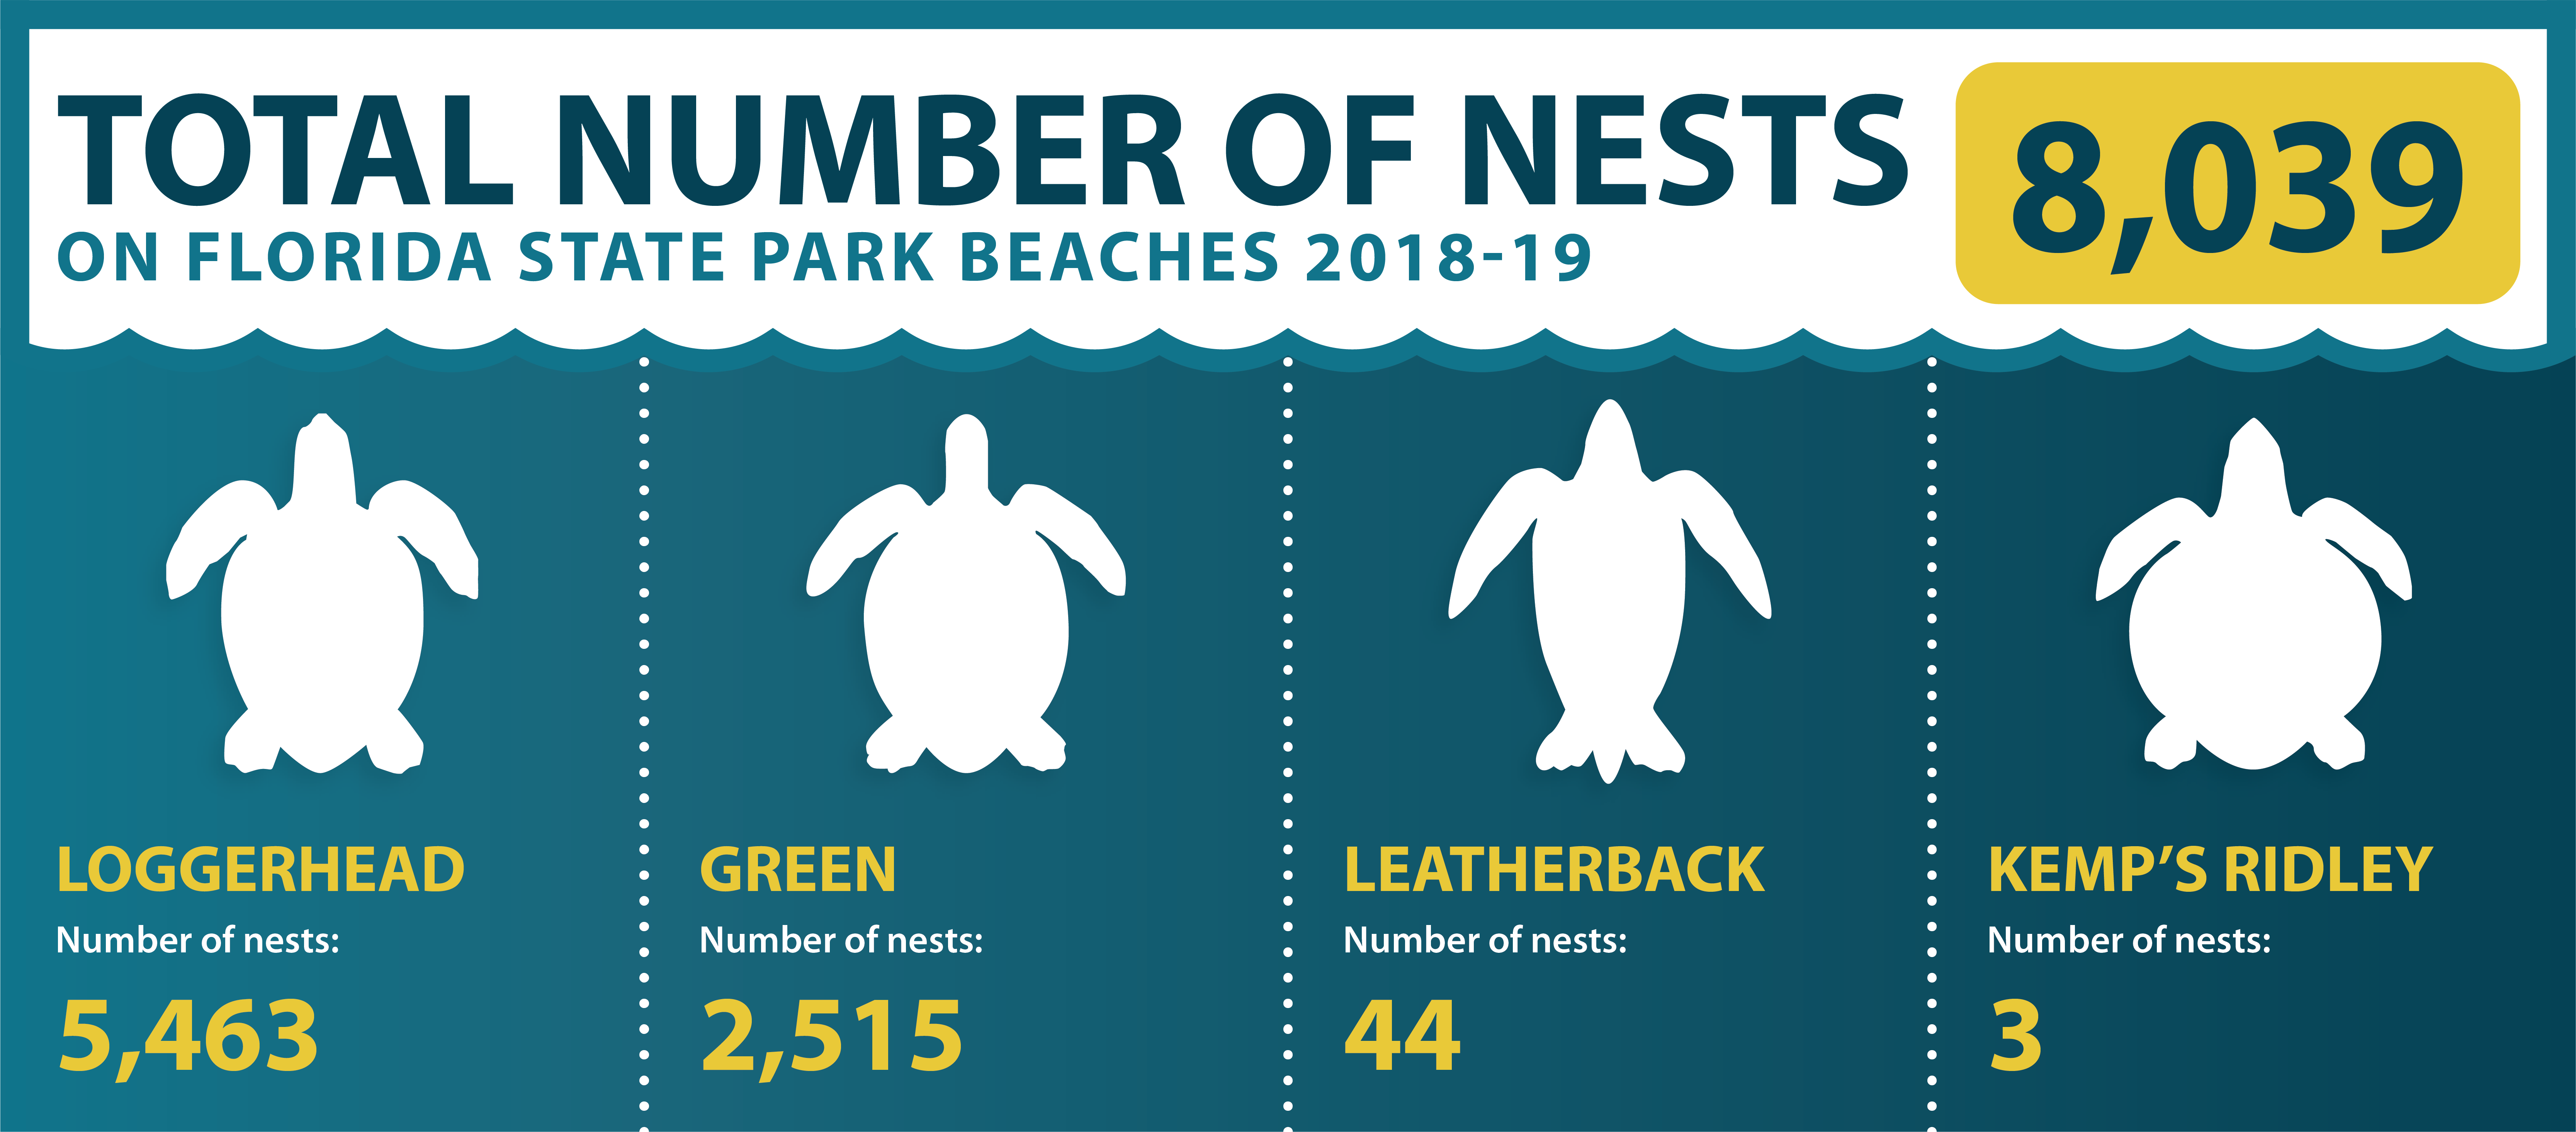 A graphic showing the number of turtle nests on state park beaches 2018-19. 5463 loggerhead, 2515 green, 44 leatherback, 3 kemp's ridley.